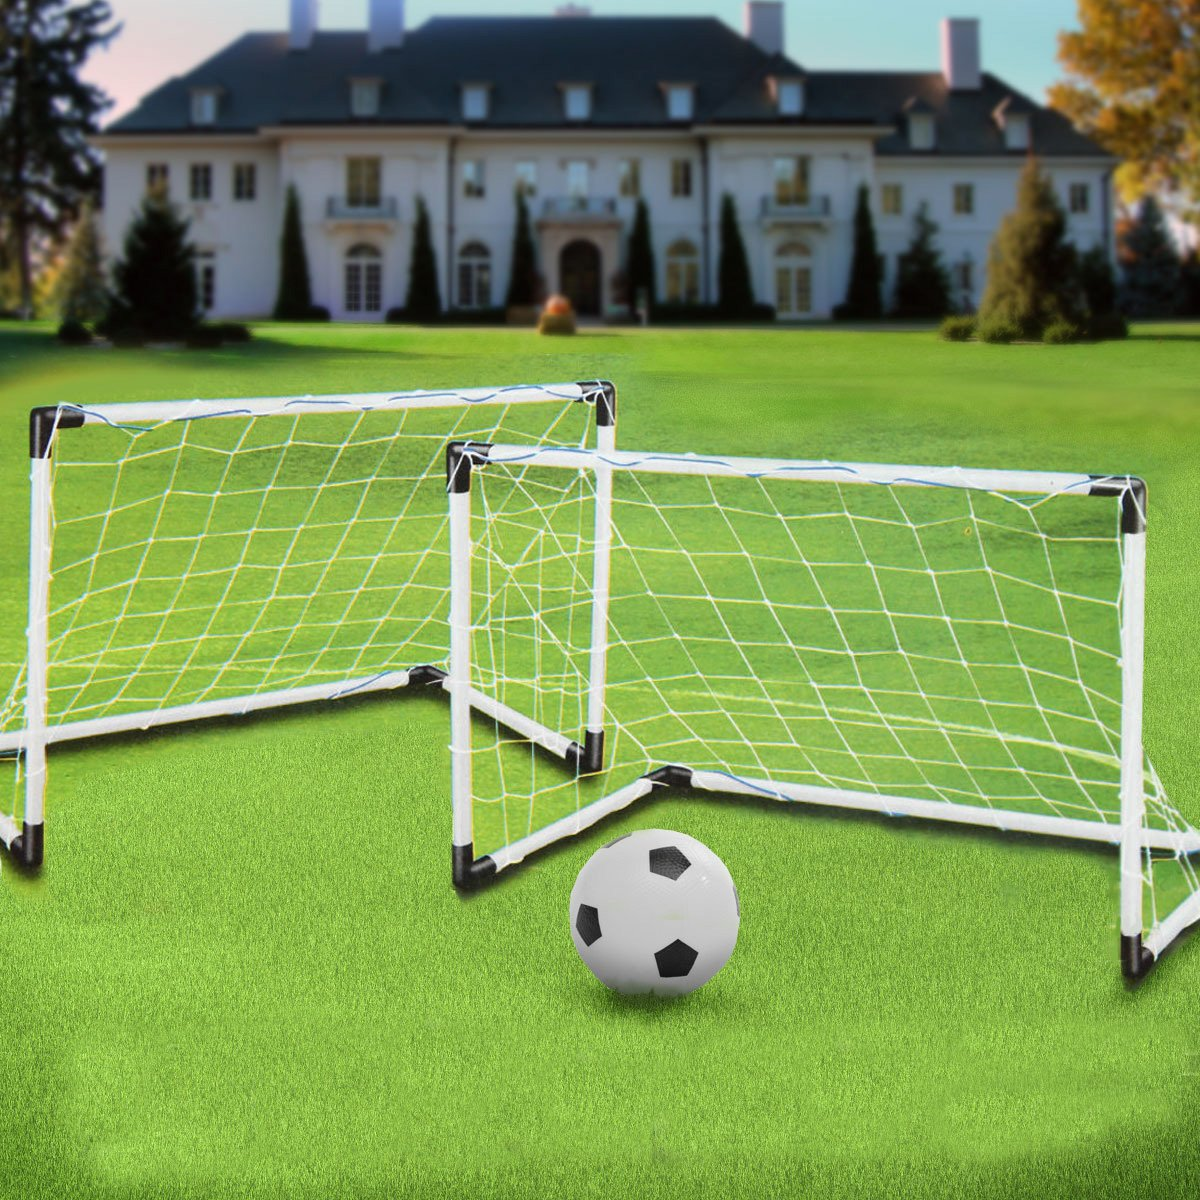 2 Mini Set Football Soccer Goal Post Net Ball Pump Kids Outdoor Sport Training Soccer Goal Soccer Goal Post Soccer